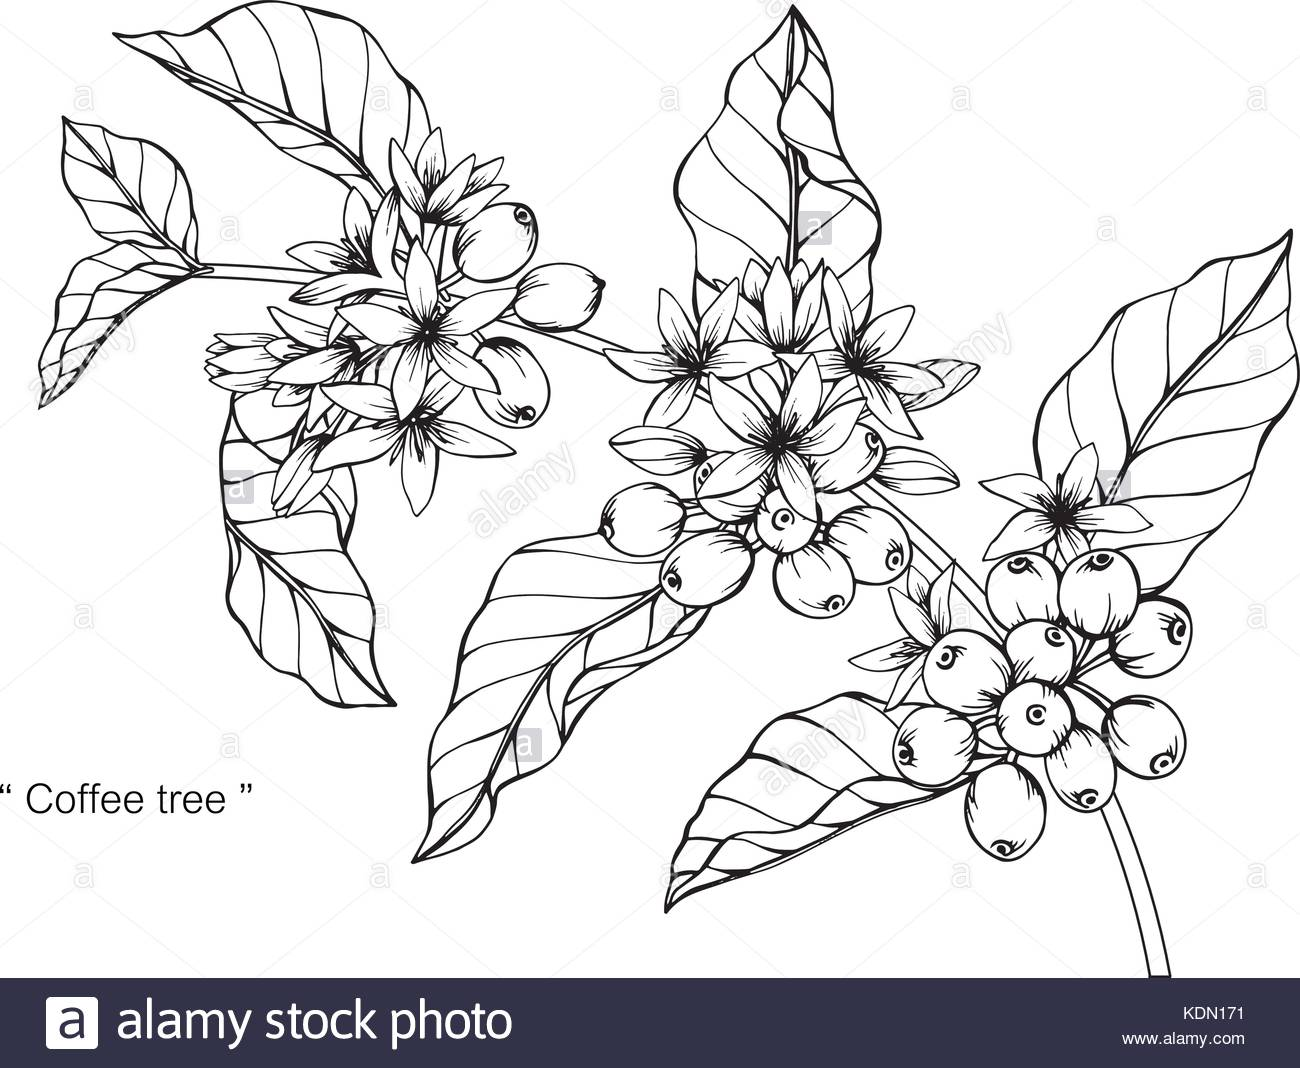 1300x1068 Coffee Tree Drawing Illustration. Black And White With Line Art